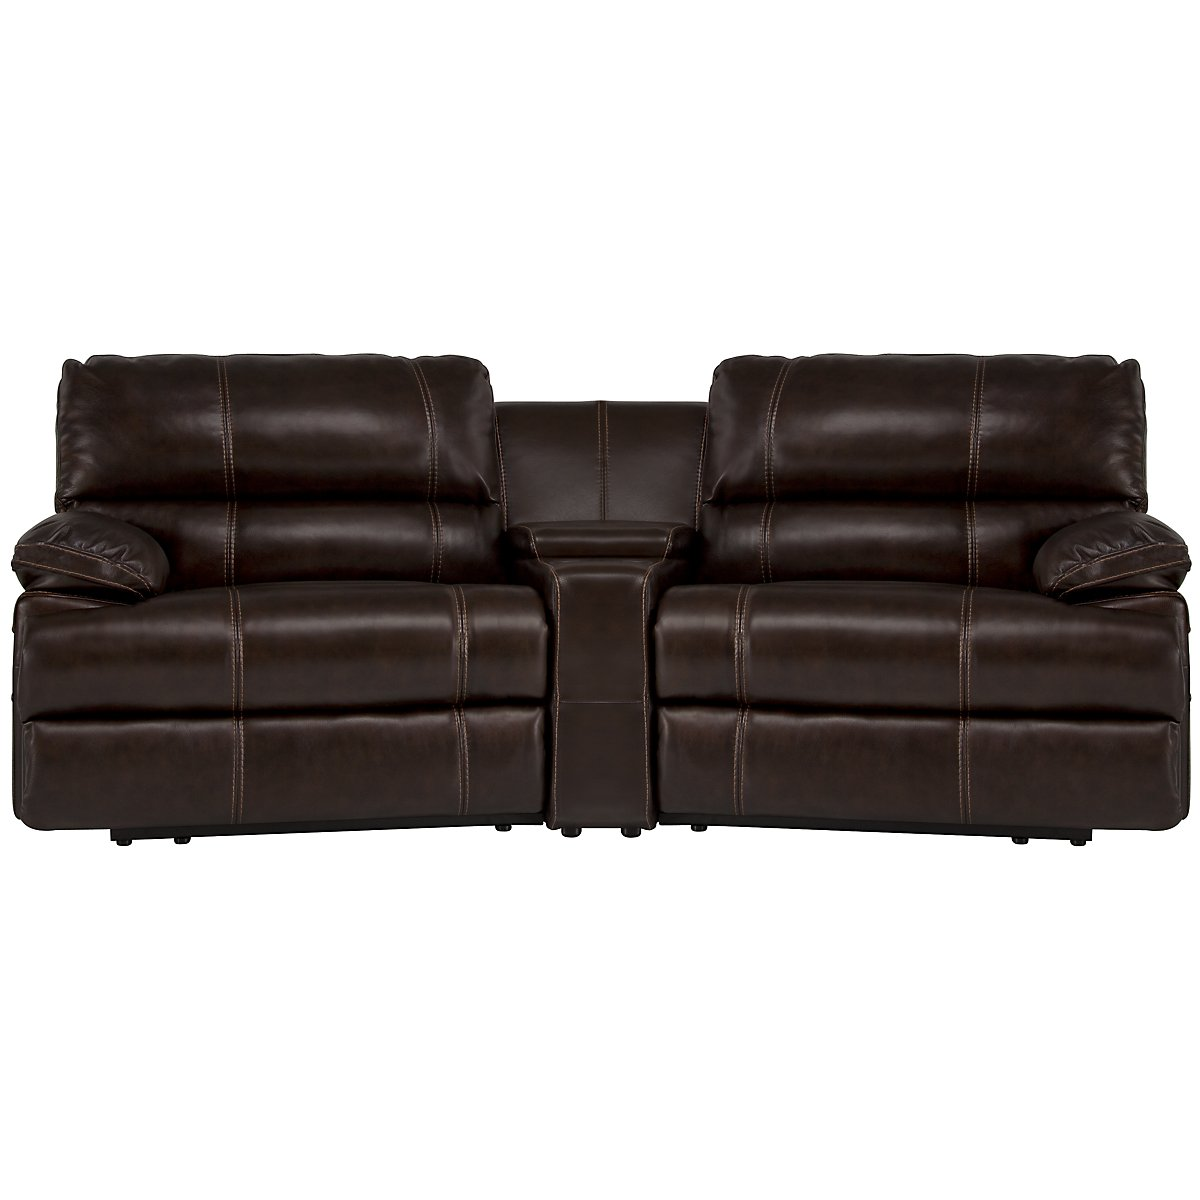 Alton2 Dark Brown Leather & Vinyl Small Manually Reclining Home Theater Sectional